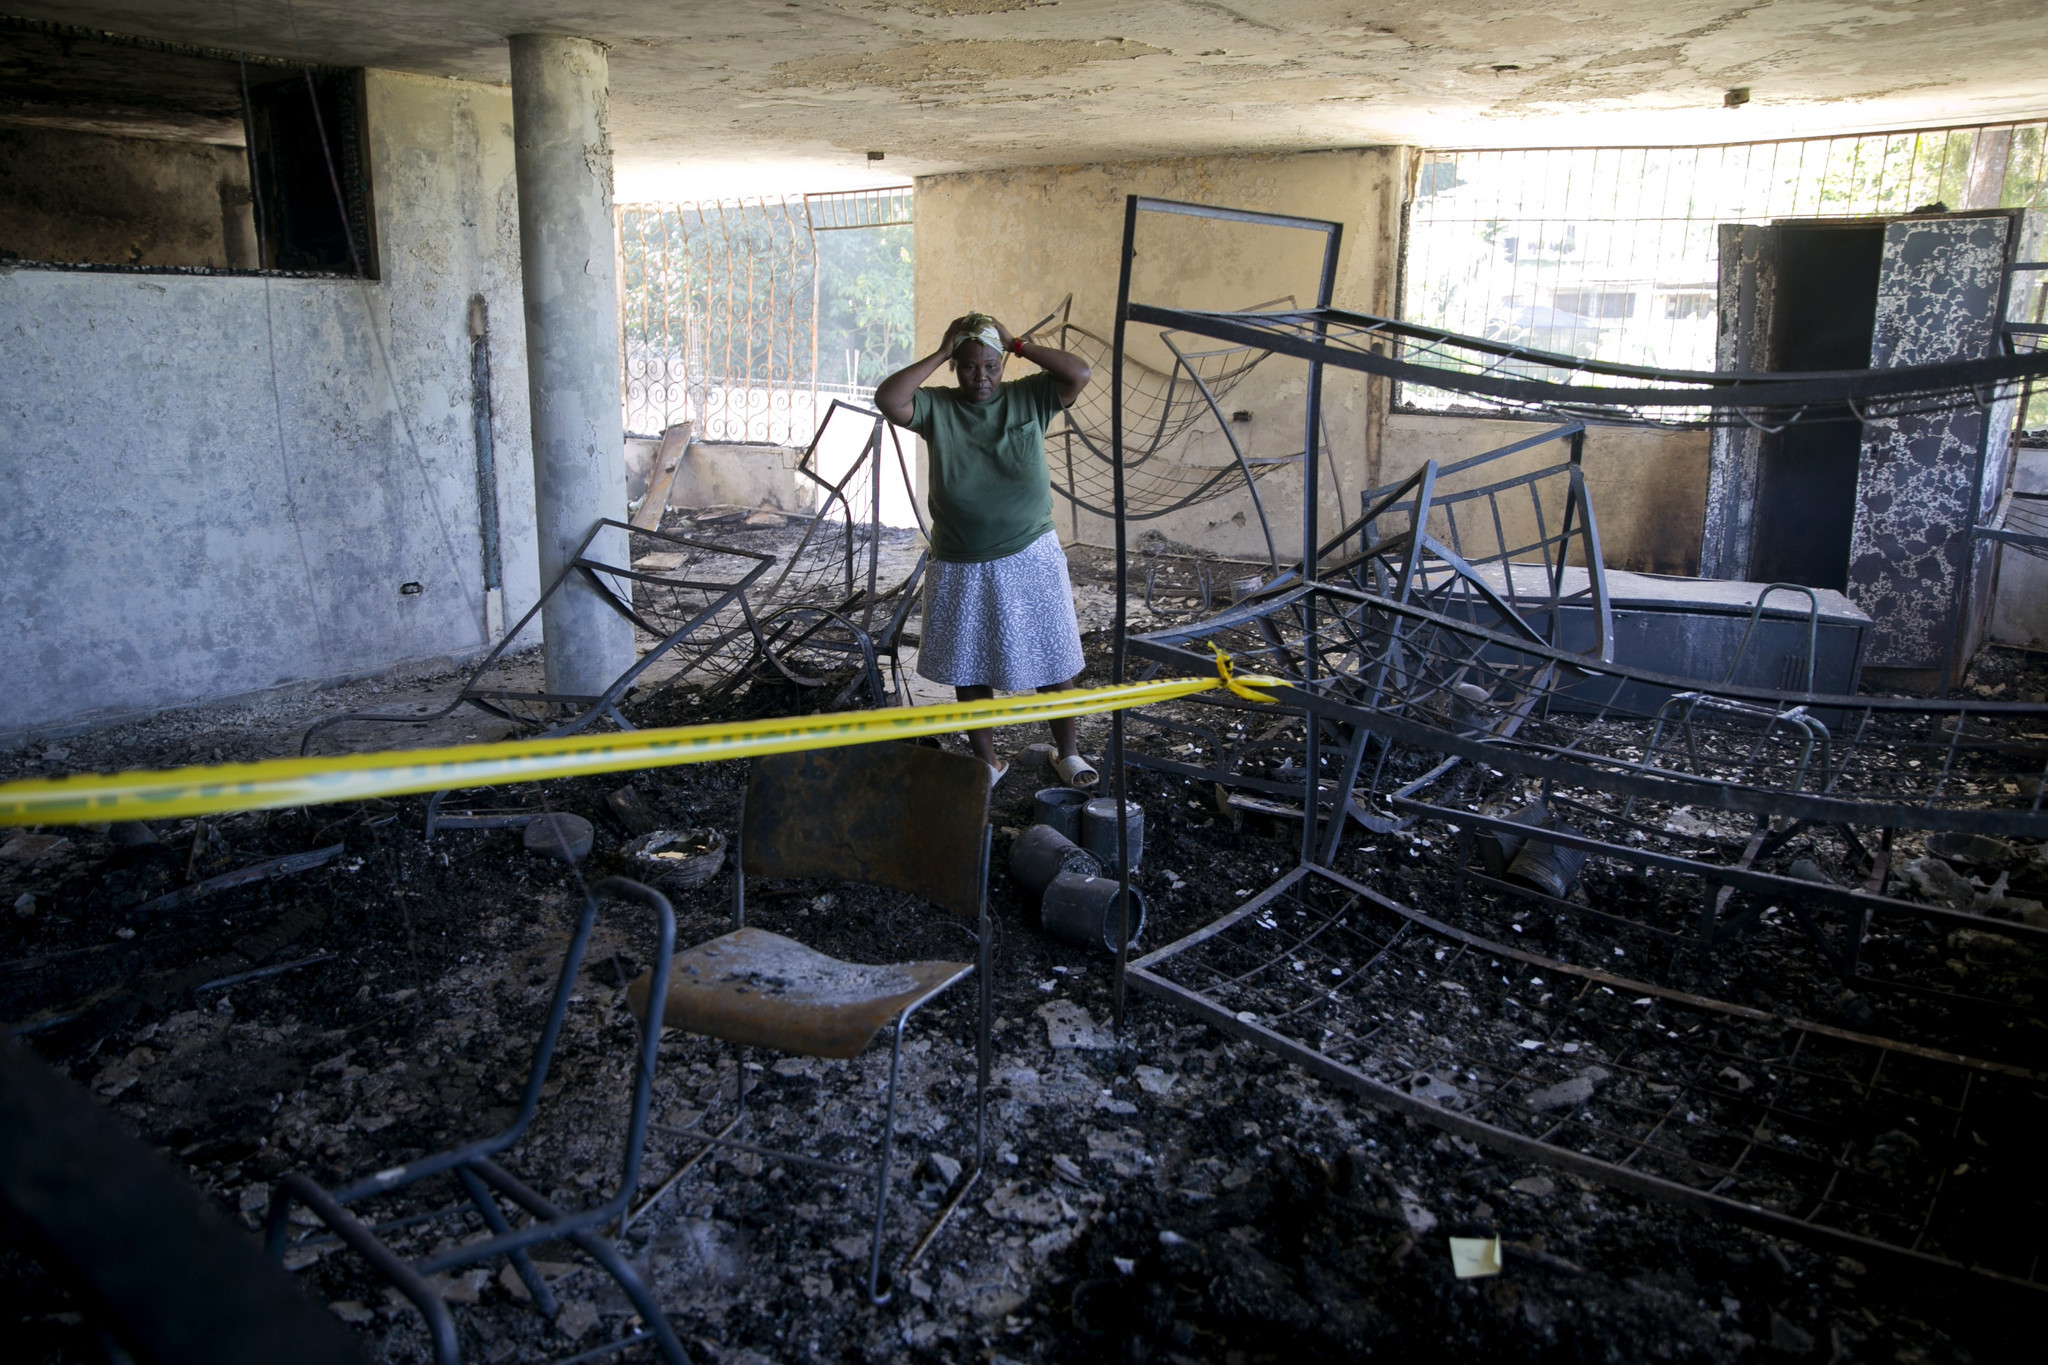 15 children killed in fire at Haitian residence known for unsanitary conditions, overcrowding